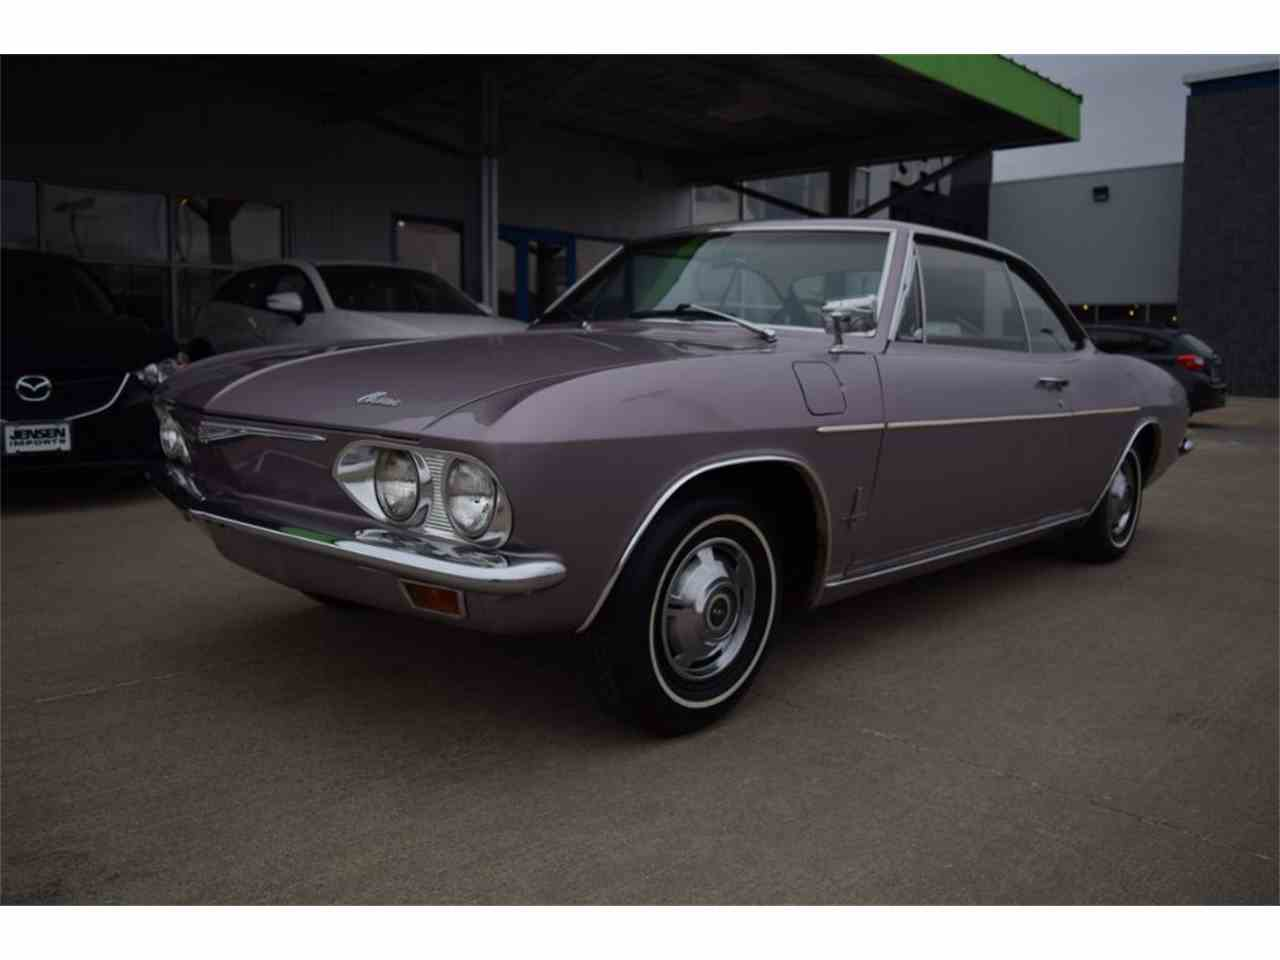 All Chevy chevy corvair monza : 1965 Chevrolet Corvair Monza for Sale | ClassicCars.com | CC-930453